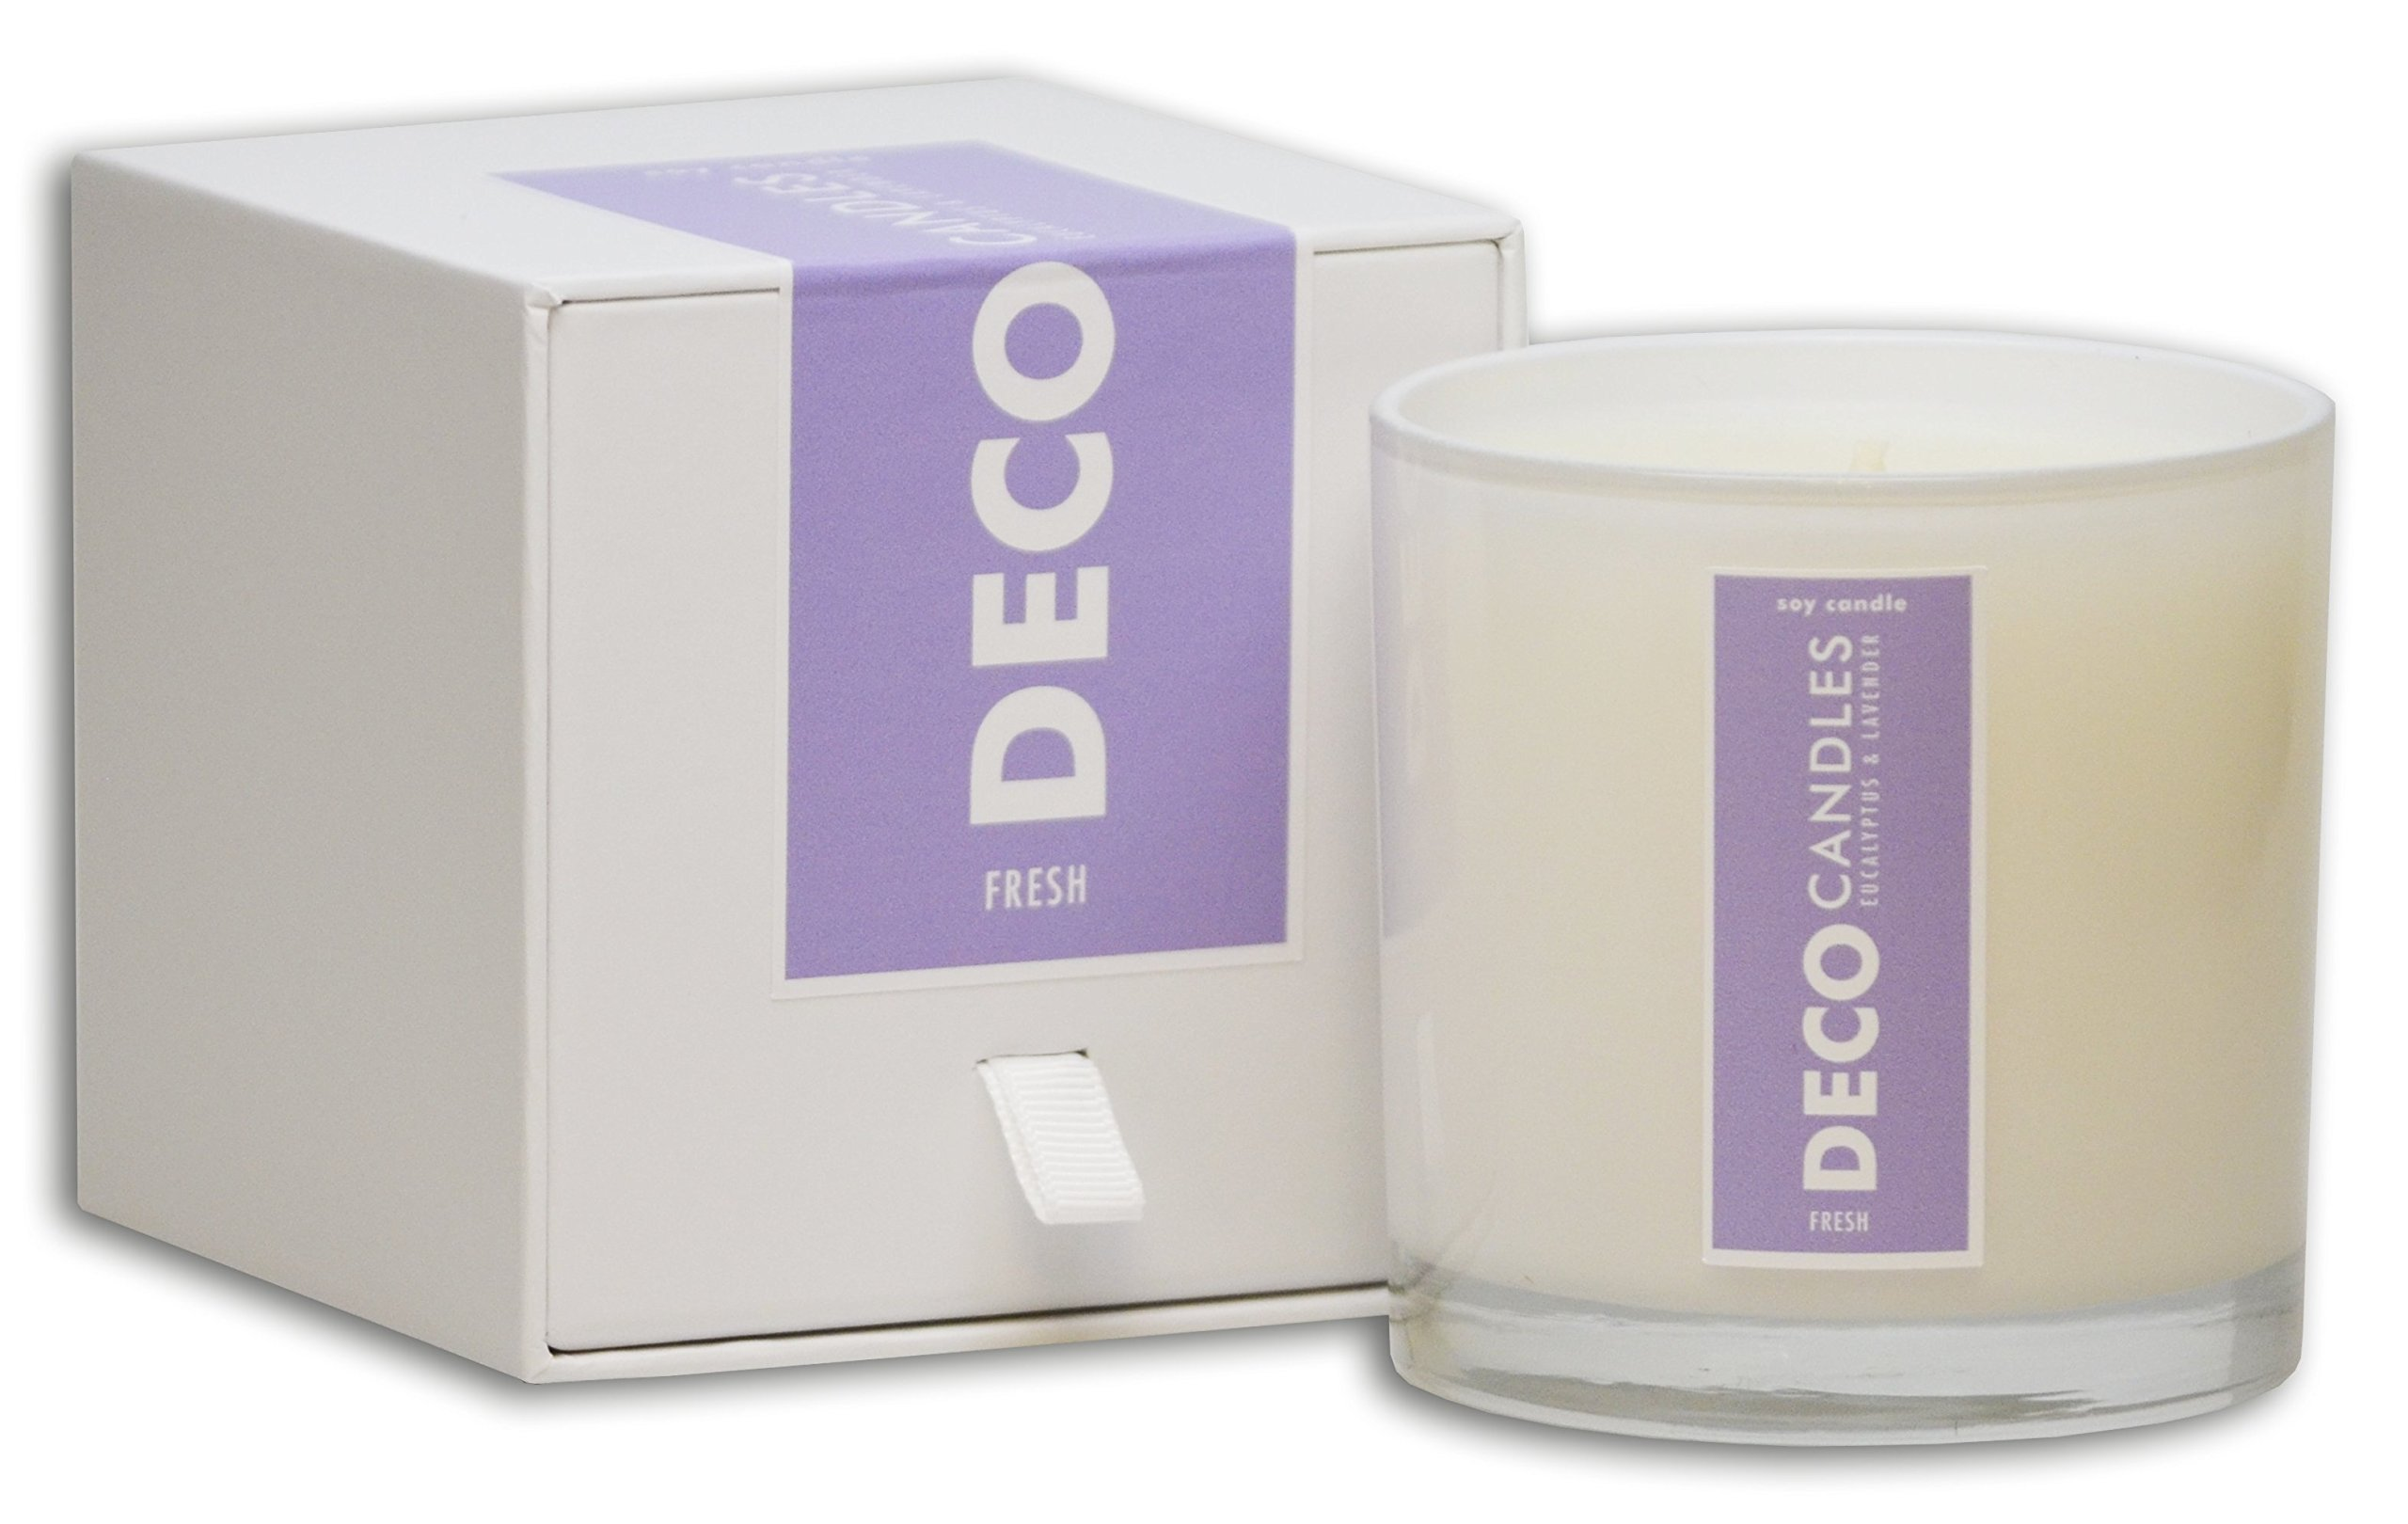 DecoCandleS | Fresh - Eucalyptus & Lavender - Highly Scented Candle - Long Lasting - Hand poured in the USA - Hotel Inspired Collection - 9 Oz.